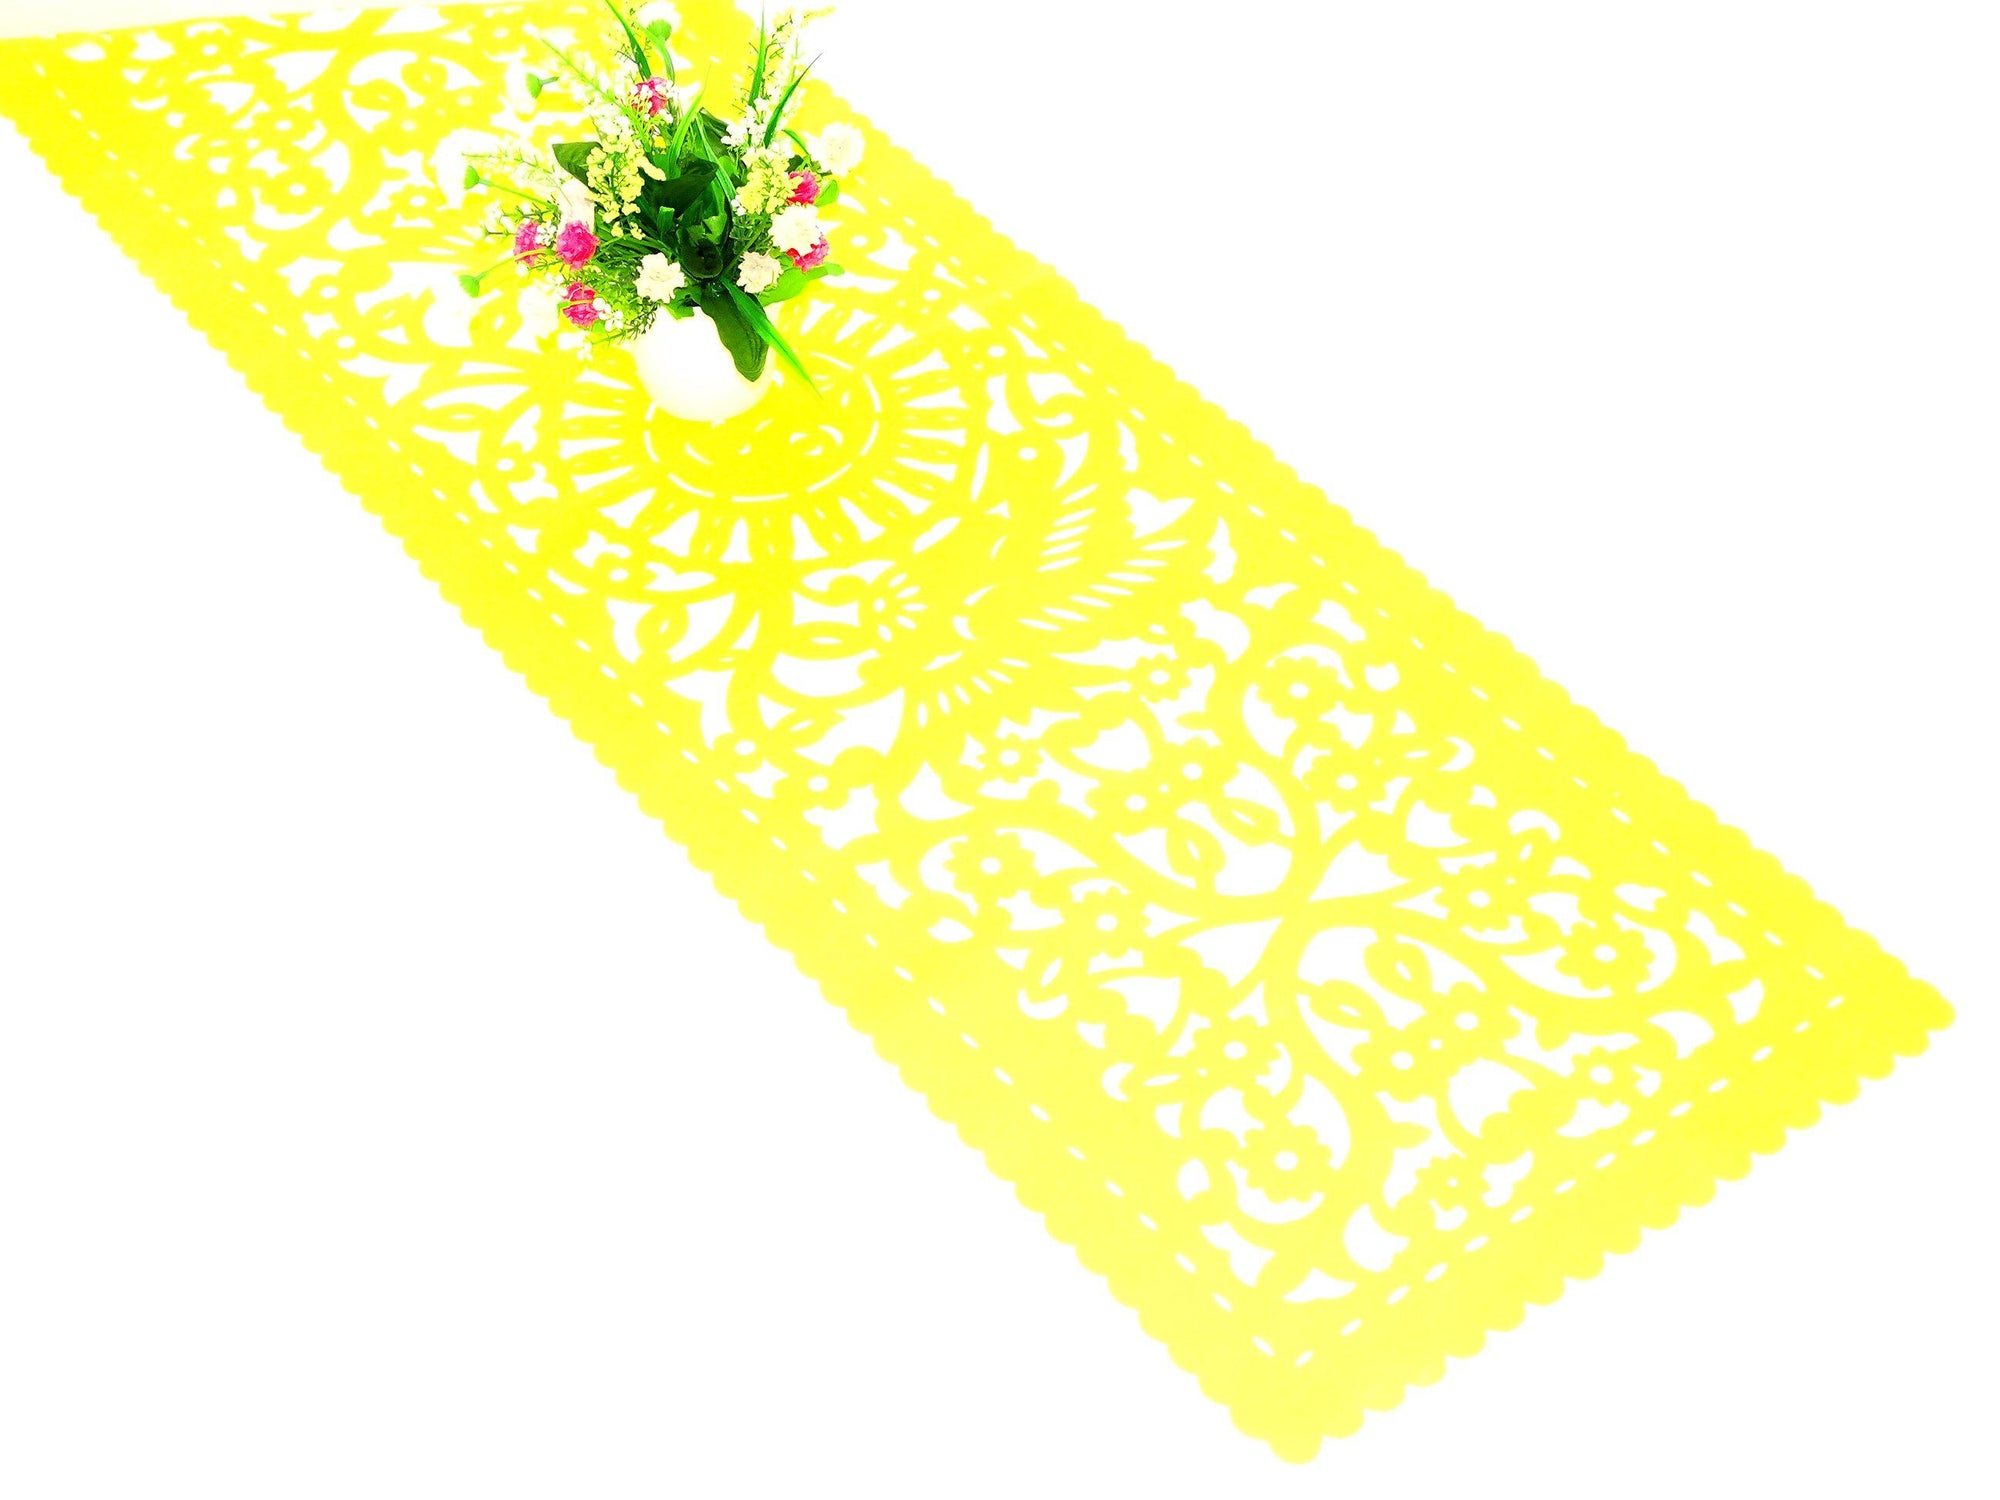 Papel picado table runner, Yellow synthetic fabric, Mexican fiesta decorations, party supplies, FTR4